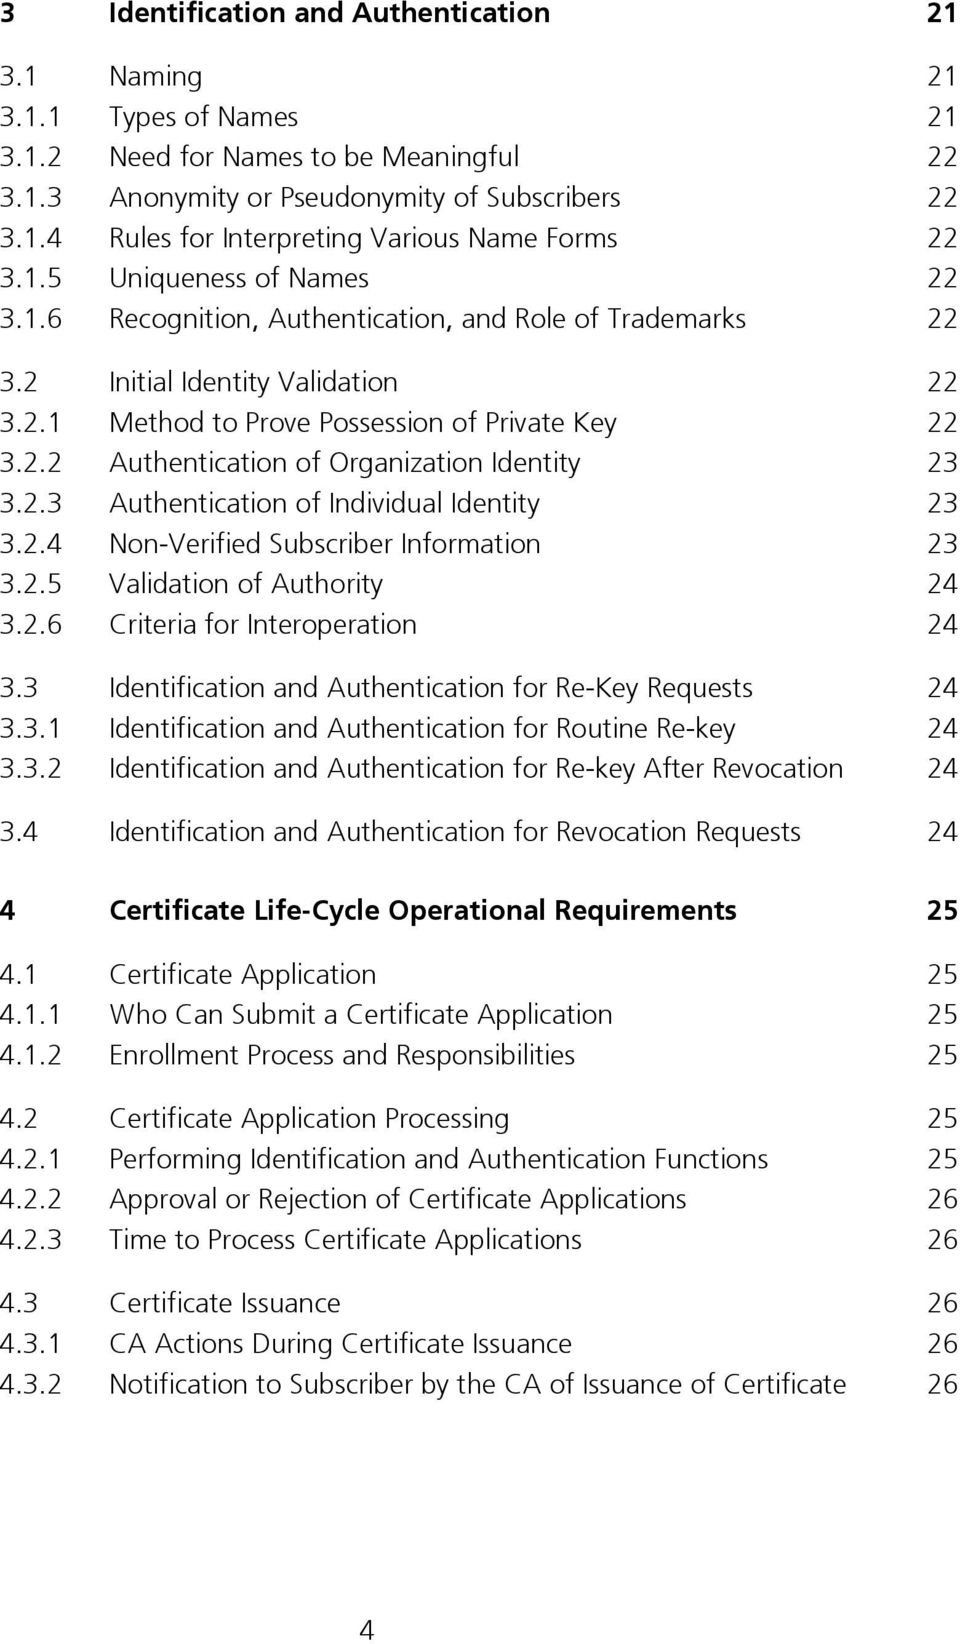 2.3 Authentication of Individual Identity 23 3.2.4 Non-Verified Subscriber Information 23 3.2.5 Validation of Authority 24 3.2.6 Criteria for Interoperation 24 3.